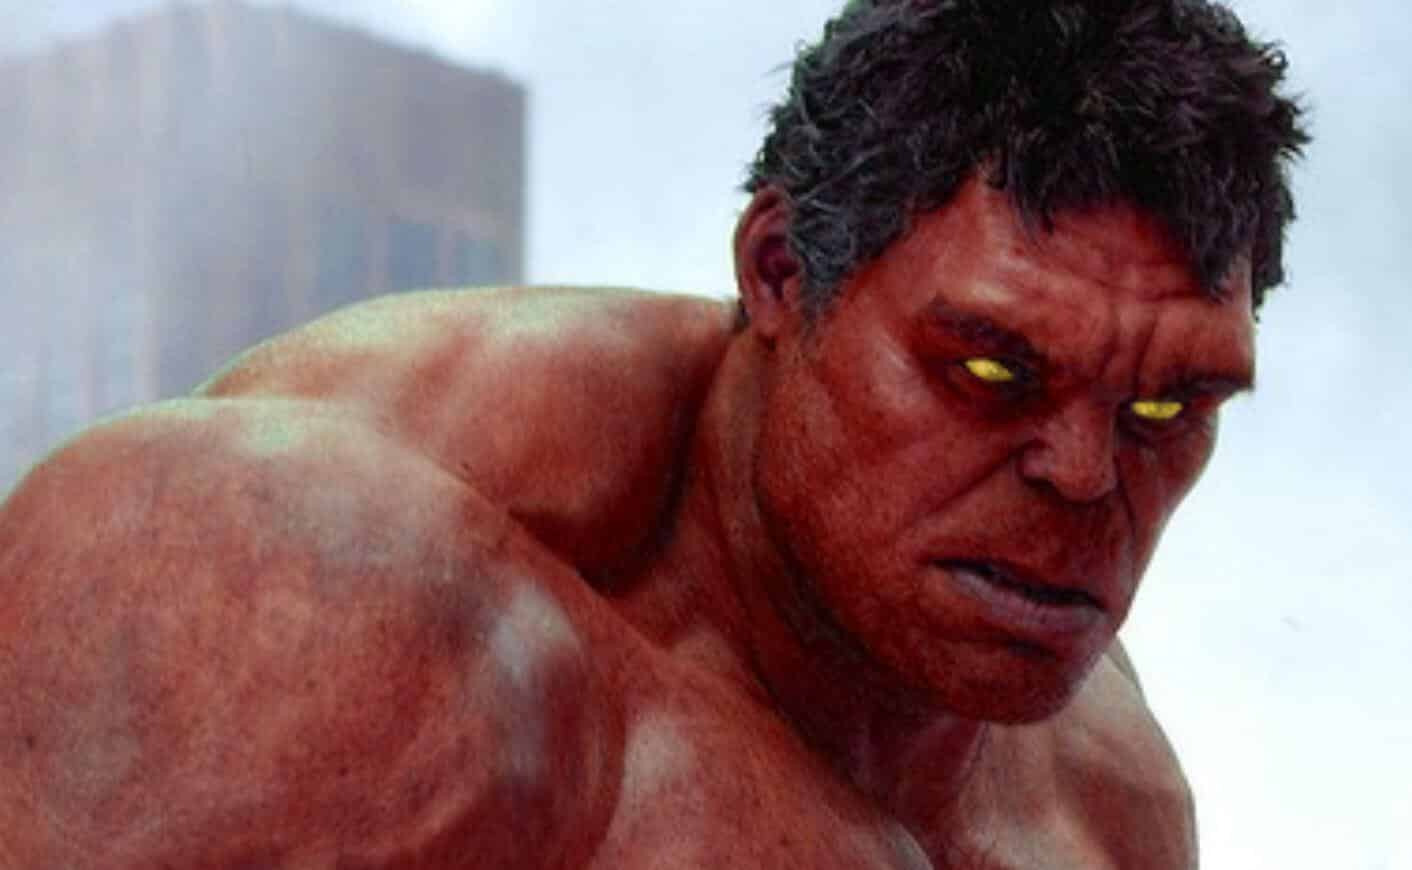 Red Hulk Almost Showed Up In 'Avengers: Endgame'